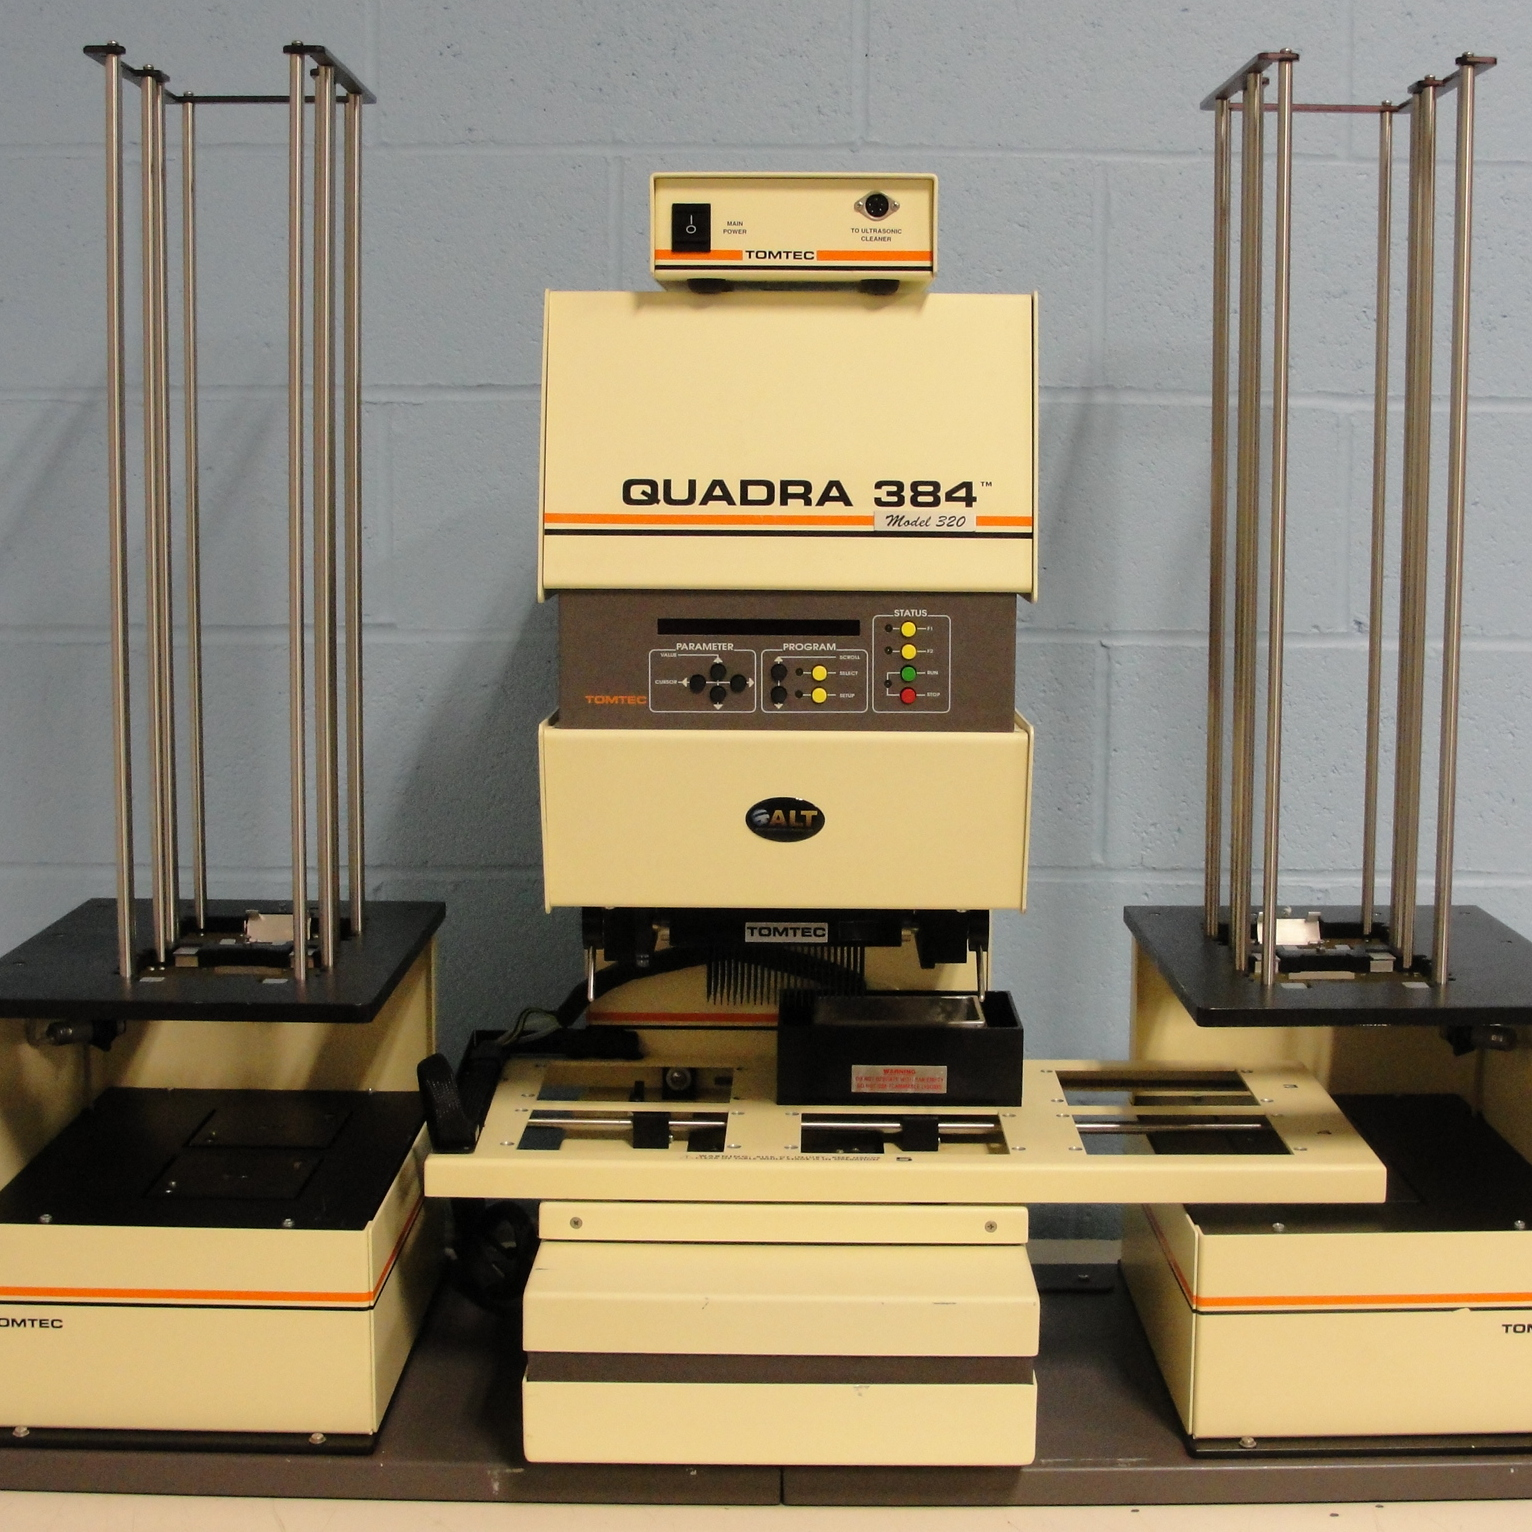 Tomtec Quadra 384 Model 320, with a Quadra 96 Stackers Model 420 Series Double Unit Image